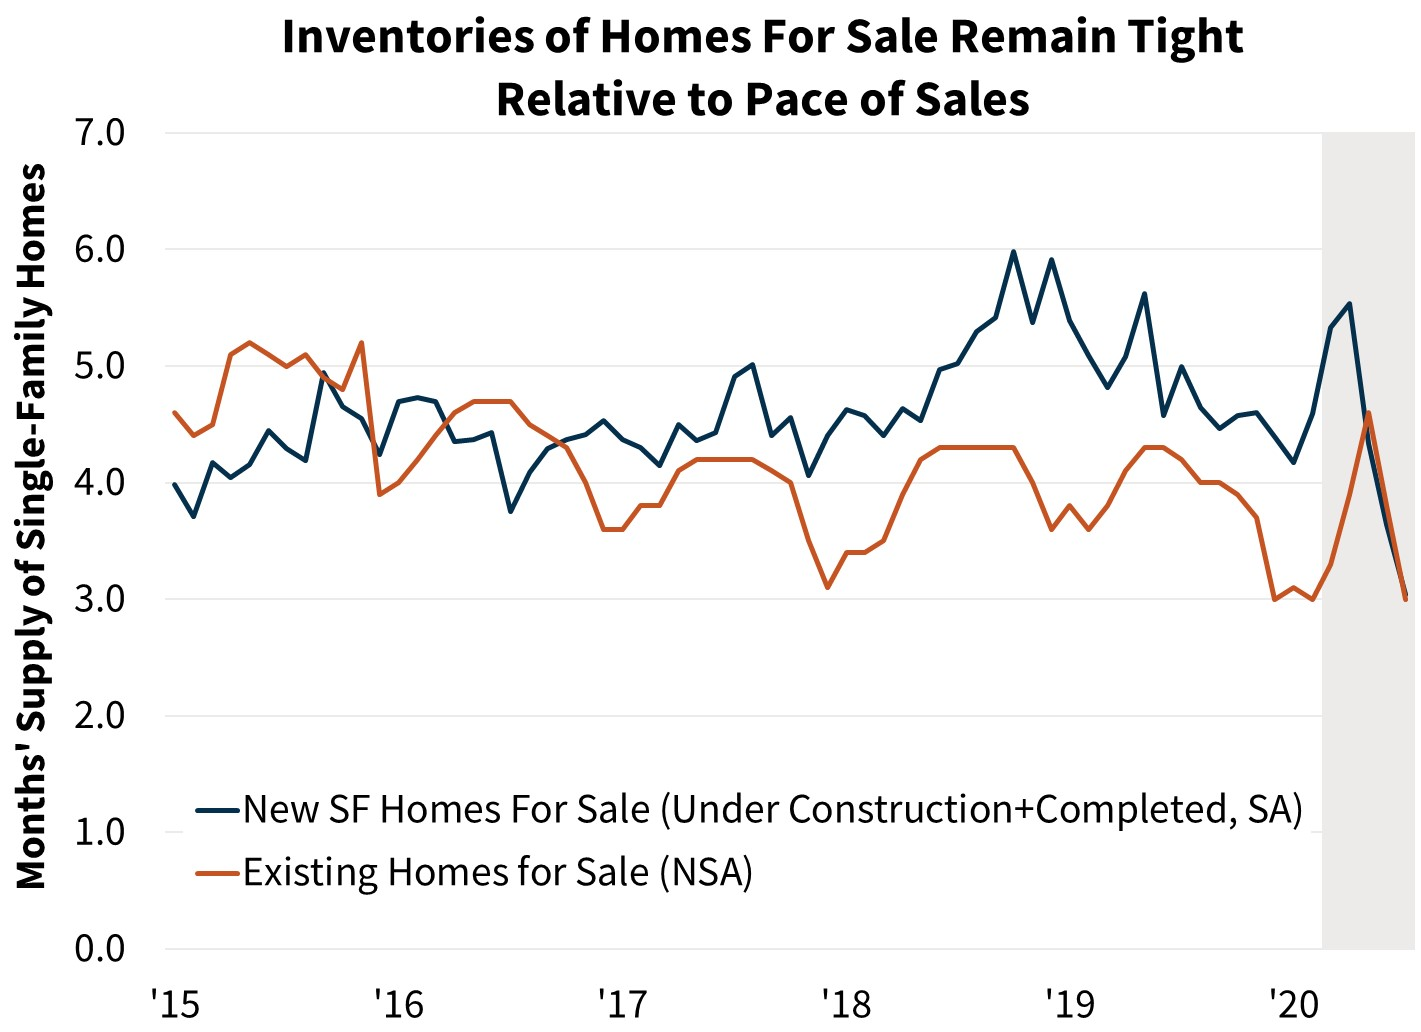 Inventories of Homes For Sale Remain Tight Relative to Pace of Sales